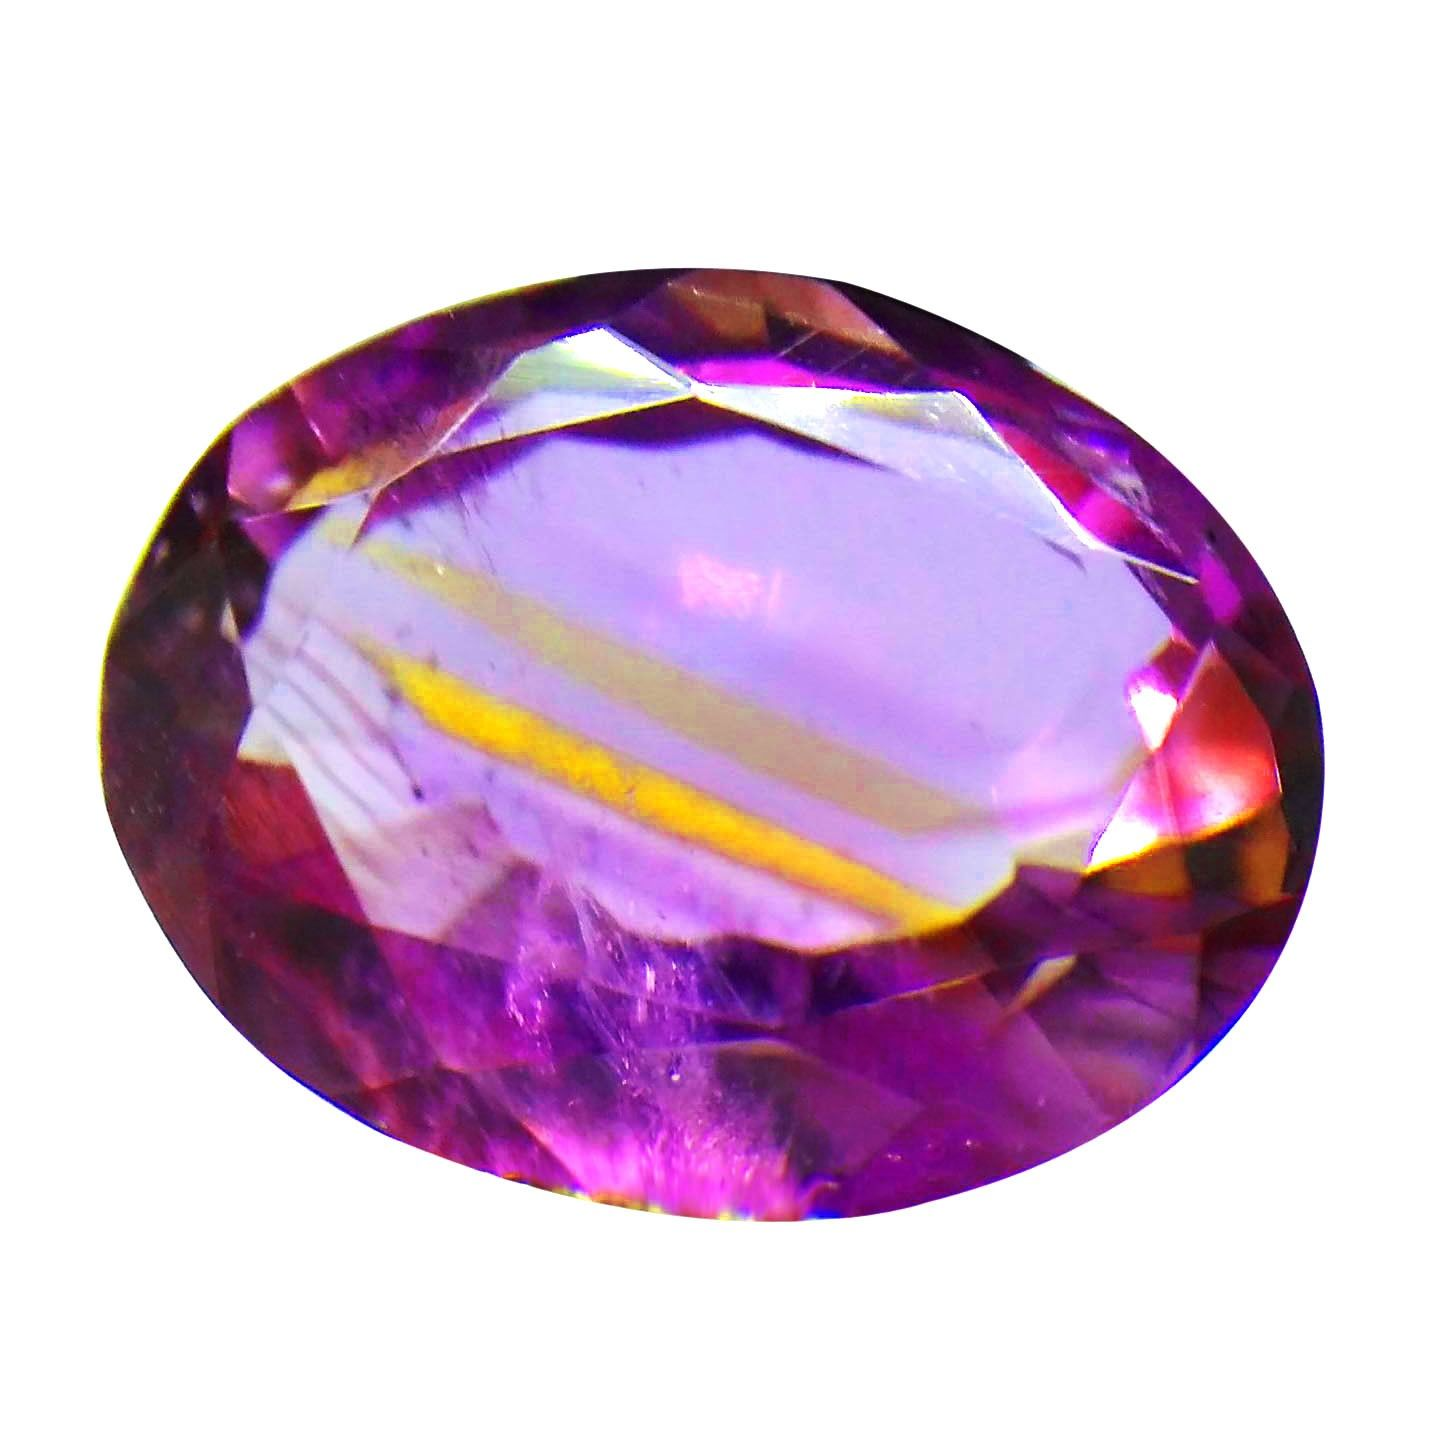 energy jewellery accessory gem mineral stone en healing color photo petal amethyst images pink faceted texture fashion natural polished precious rock crystal free violet brilliant gemstone geology background purple